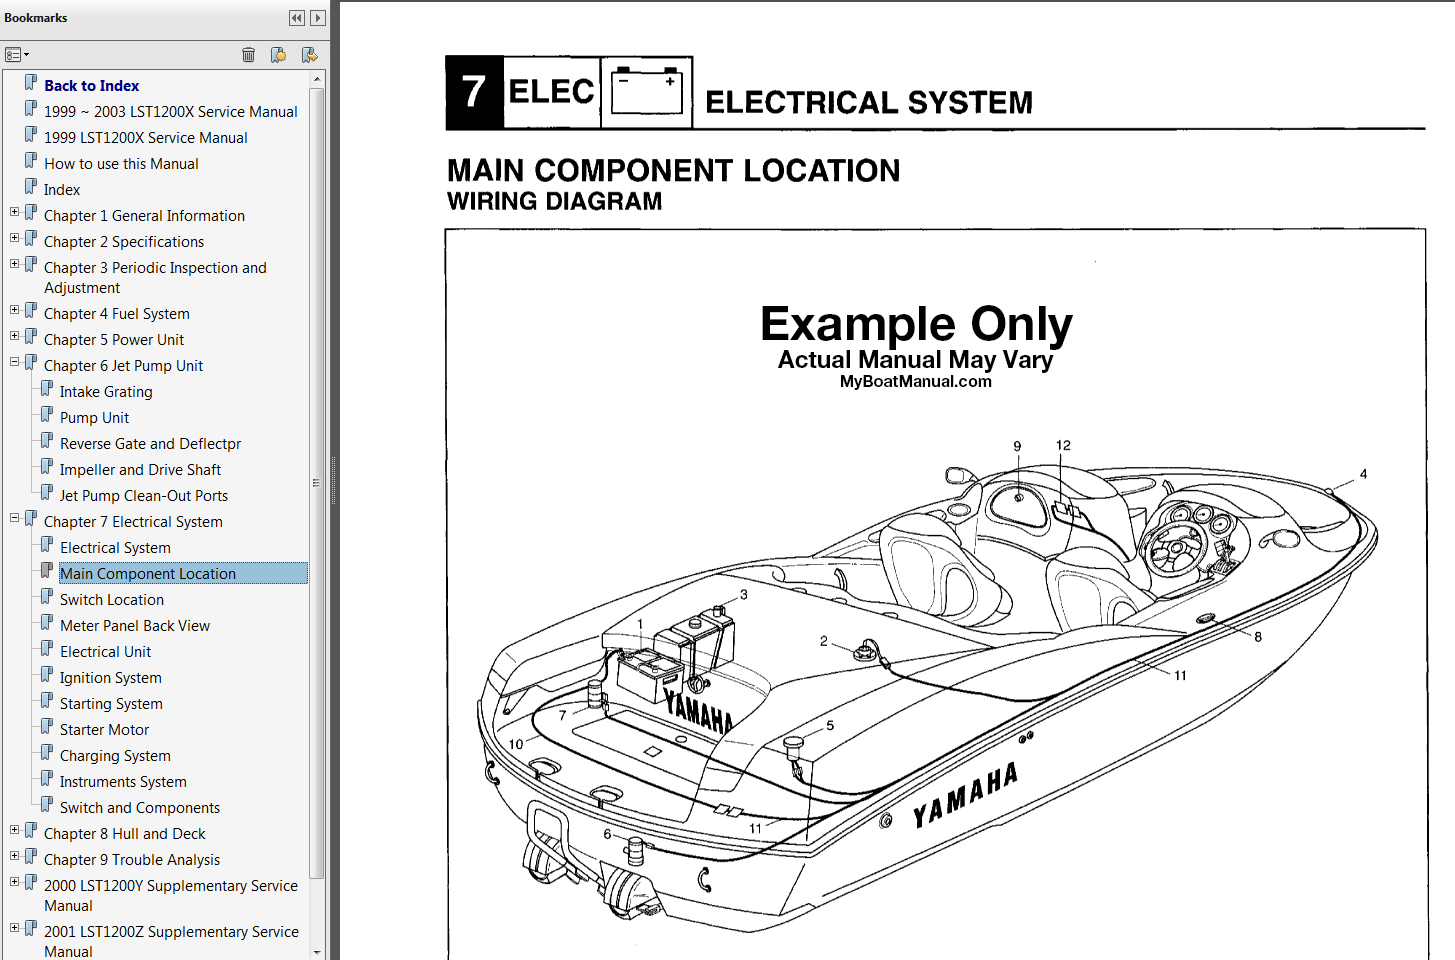 small resolution of 1996 1998 yamaha exciter 220 jet boat service manual